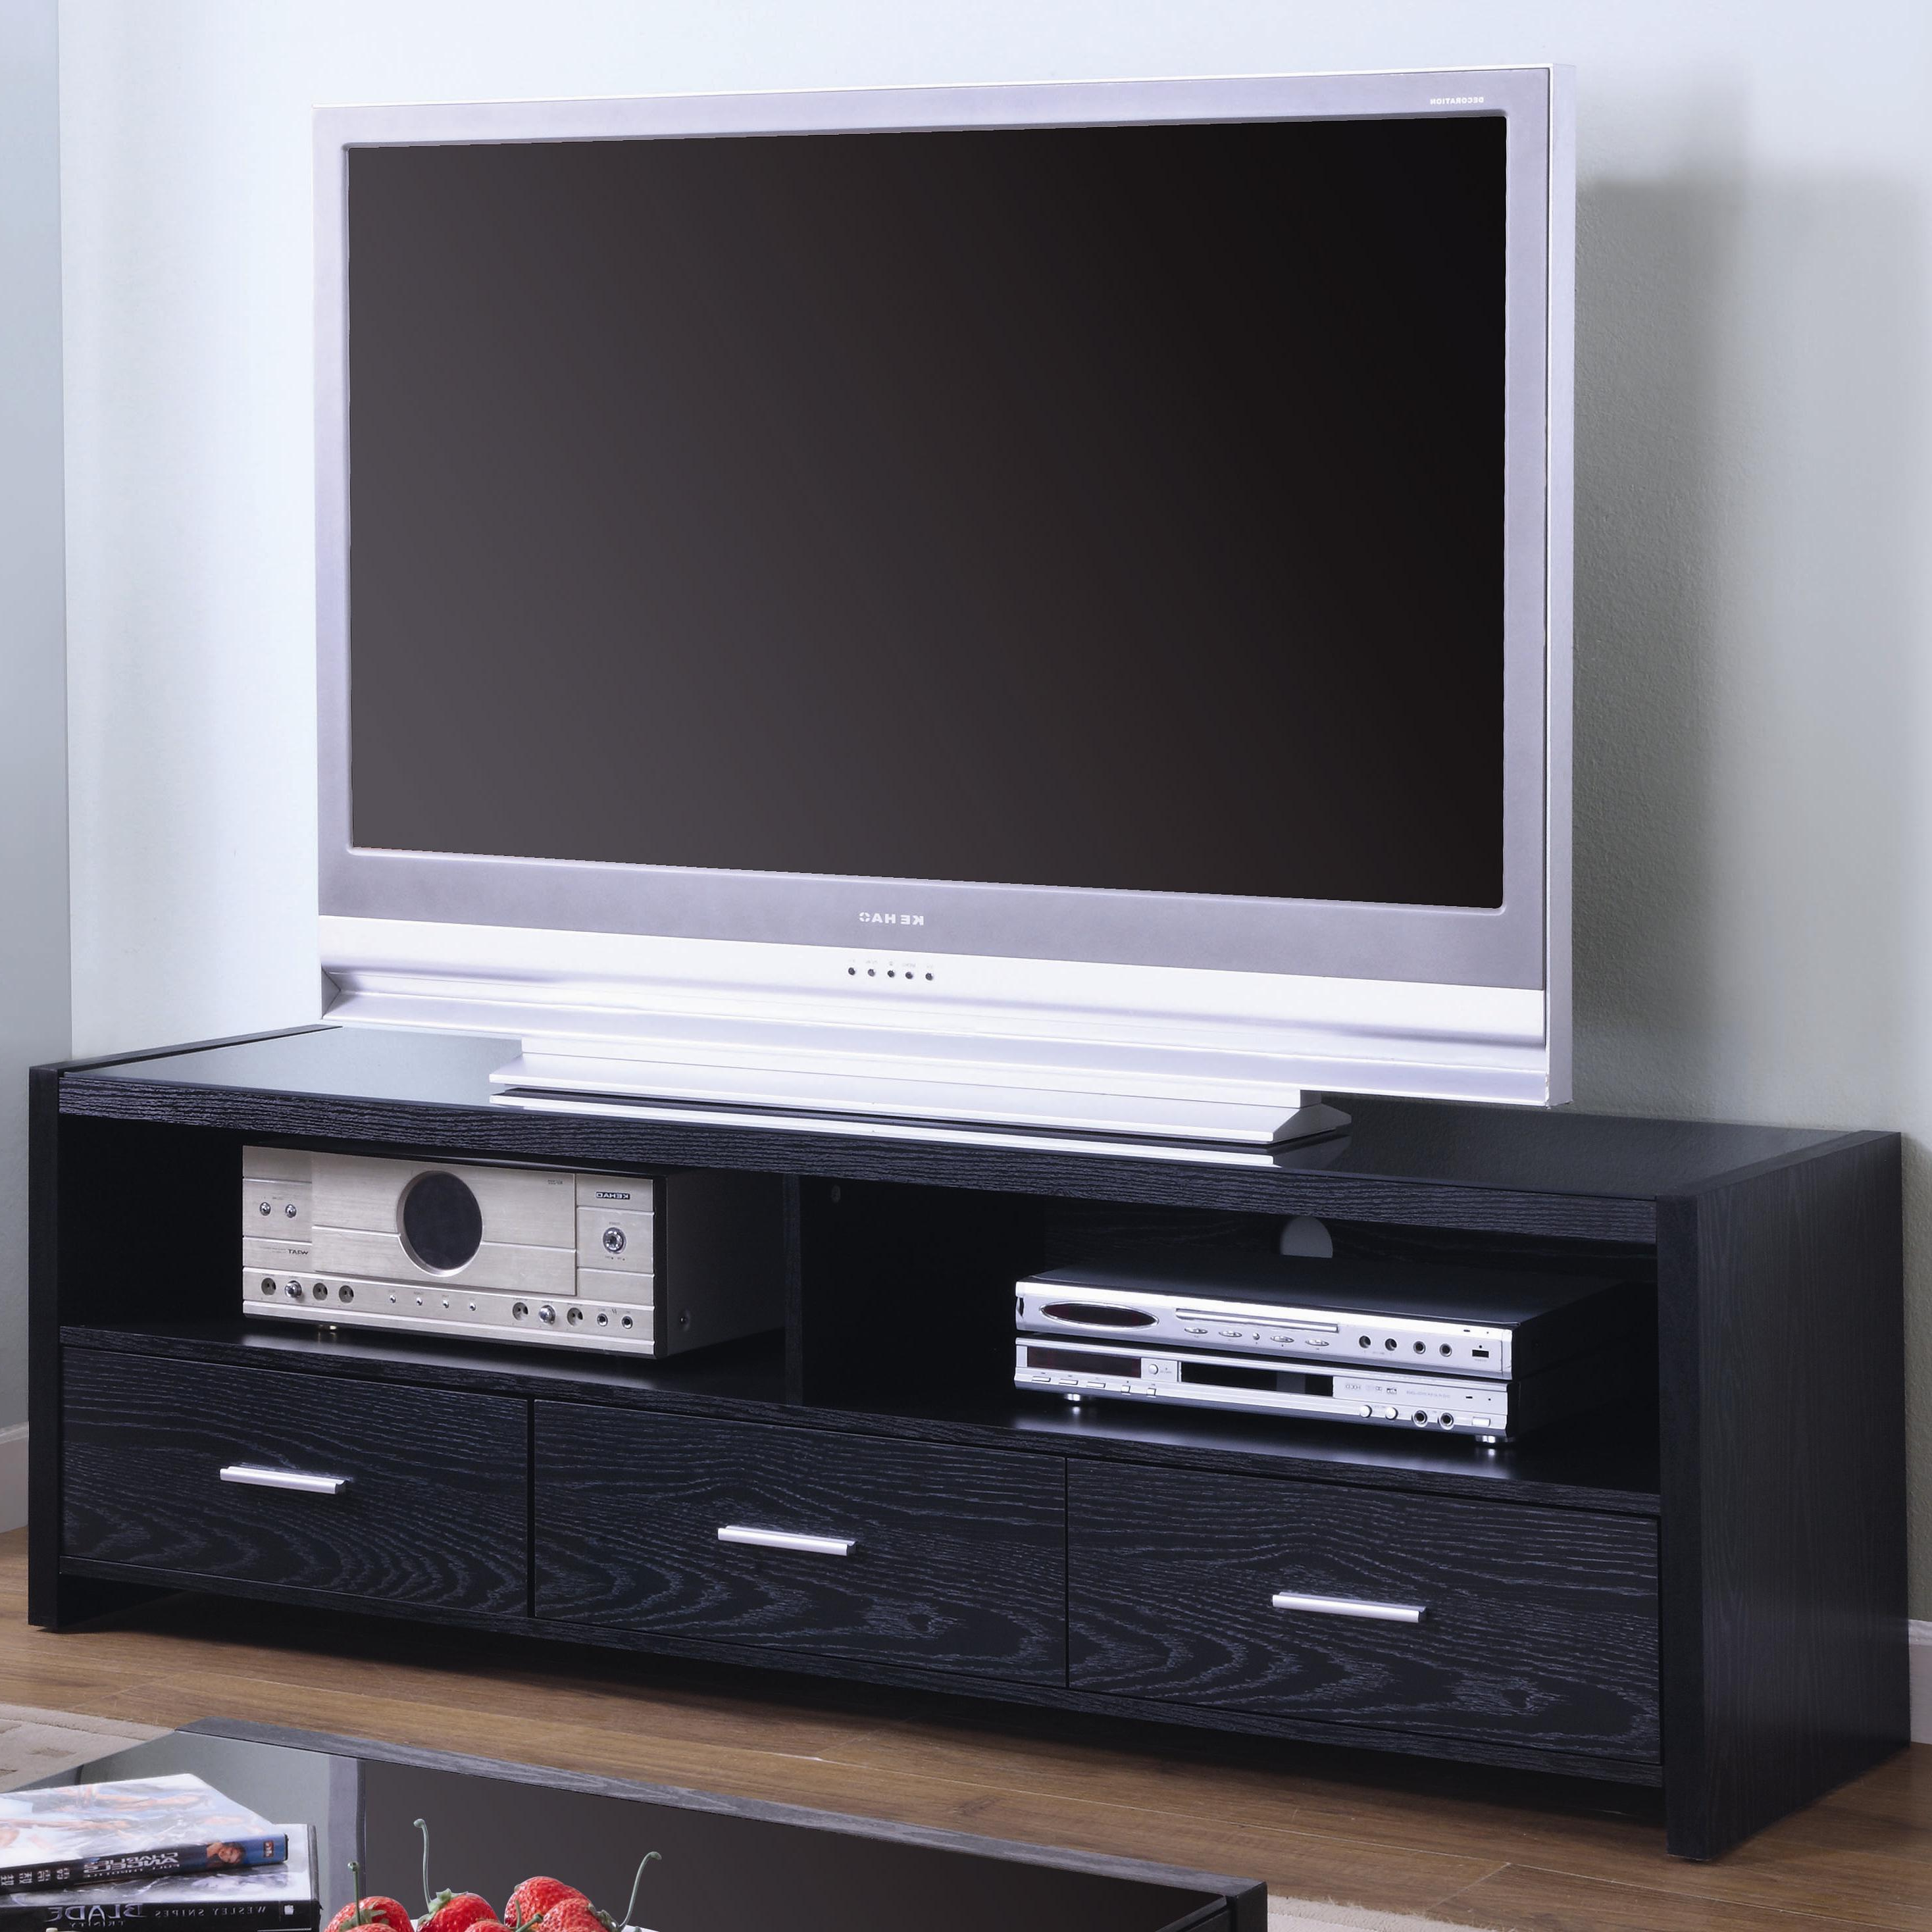 Most Current Coaster Tv Stands 700645 Contemporary Media Console With Shelves And With Tv Units With Storage (Gallery 19 of 20)